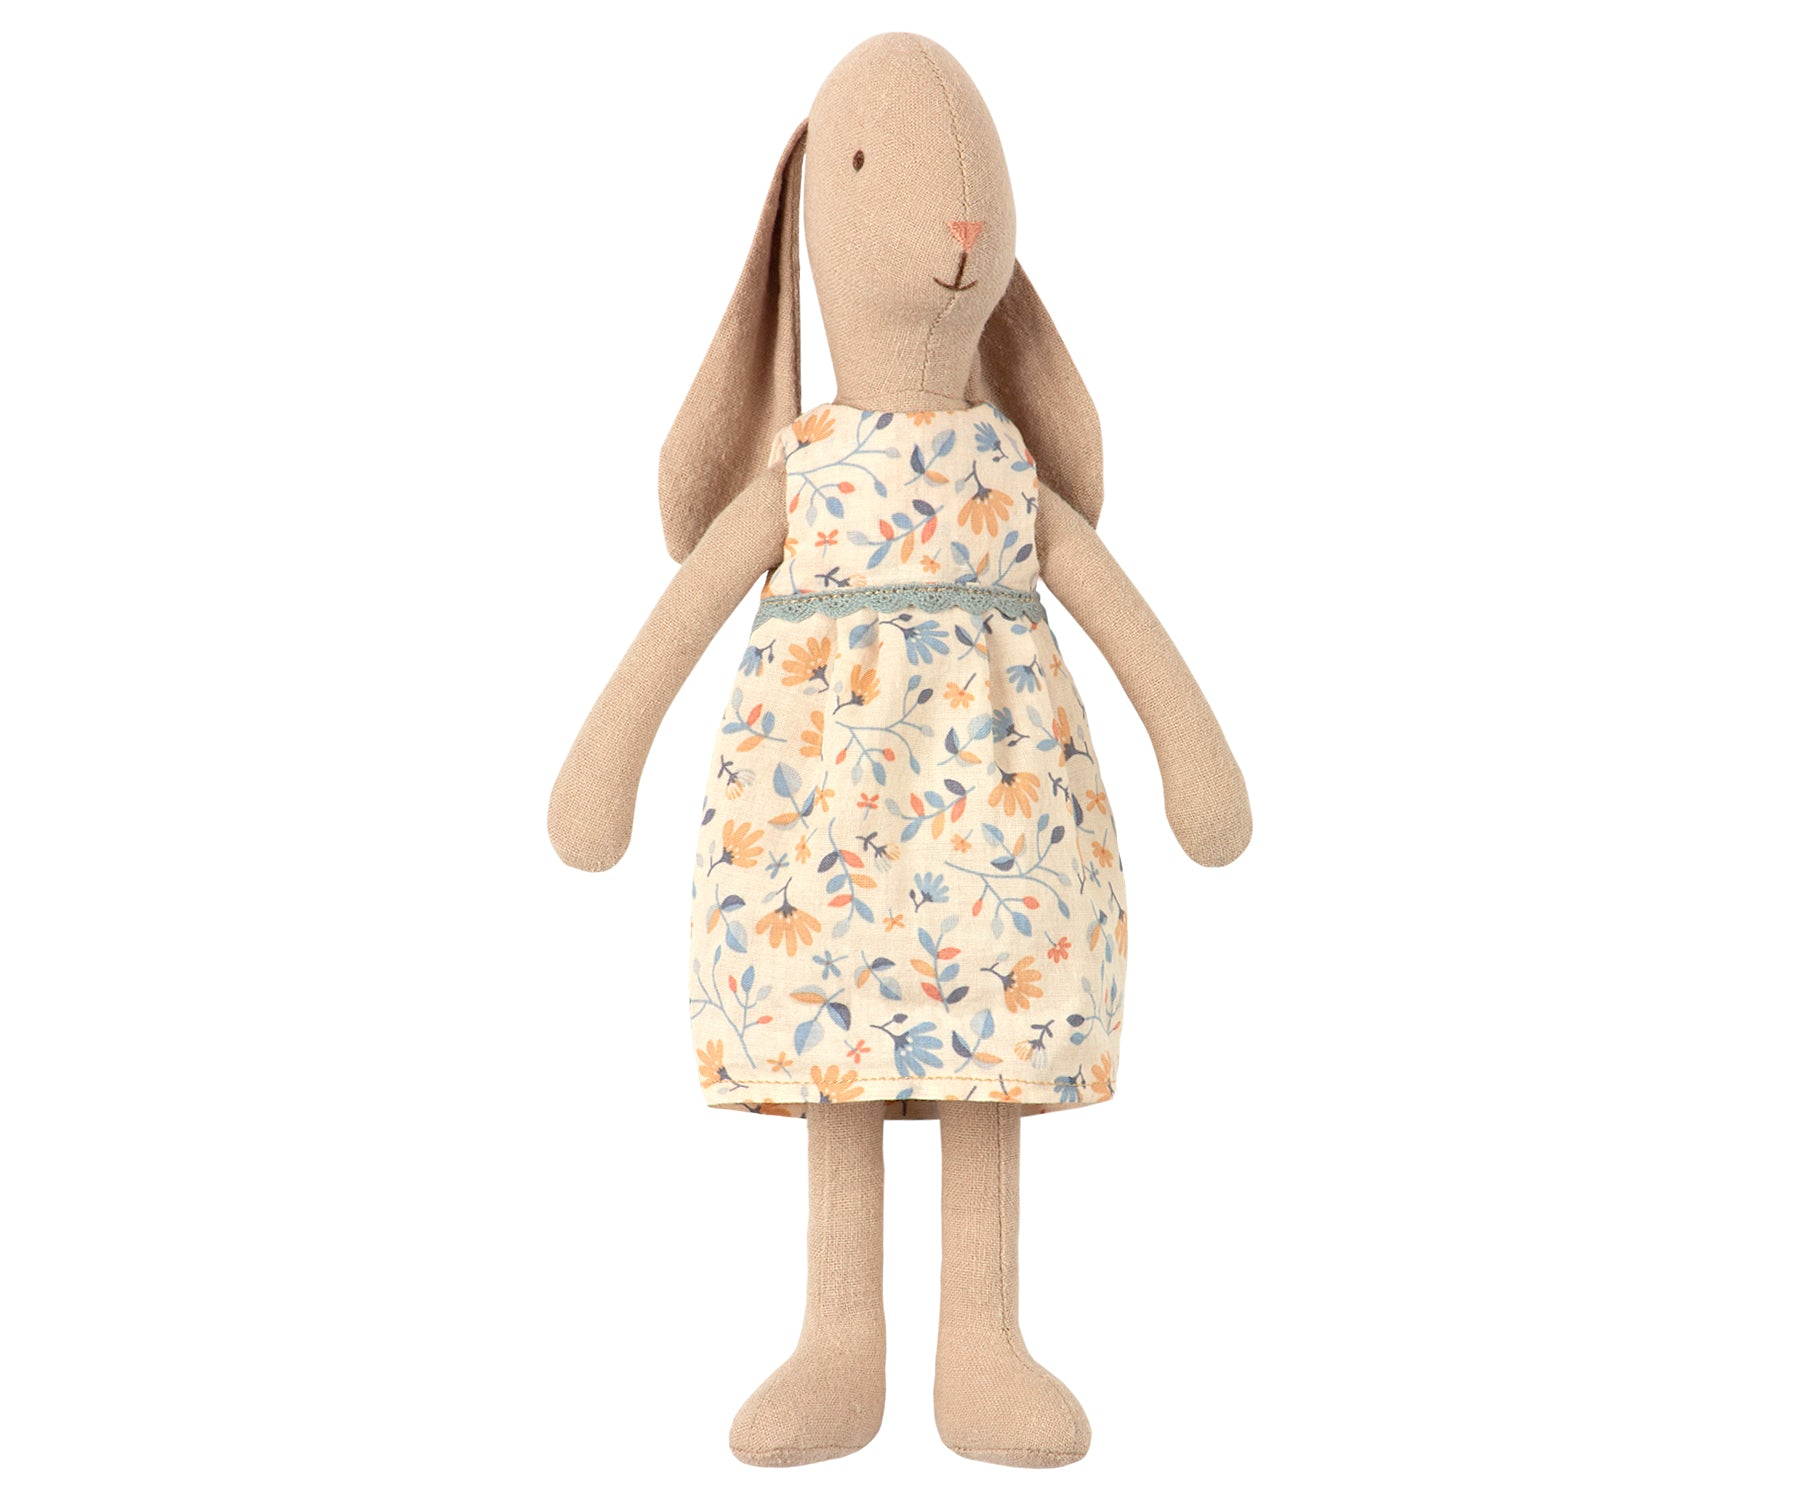 Mini Bunny Girl in Floral Dress - Size 2 by Maileg - A Fly Went By